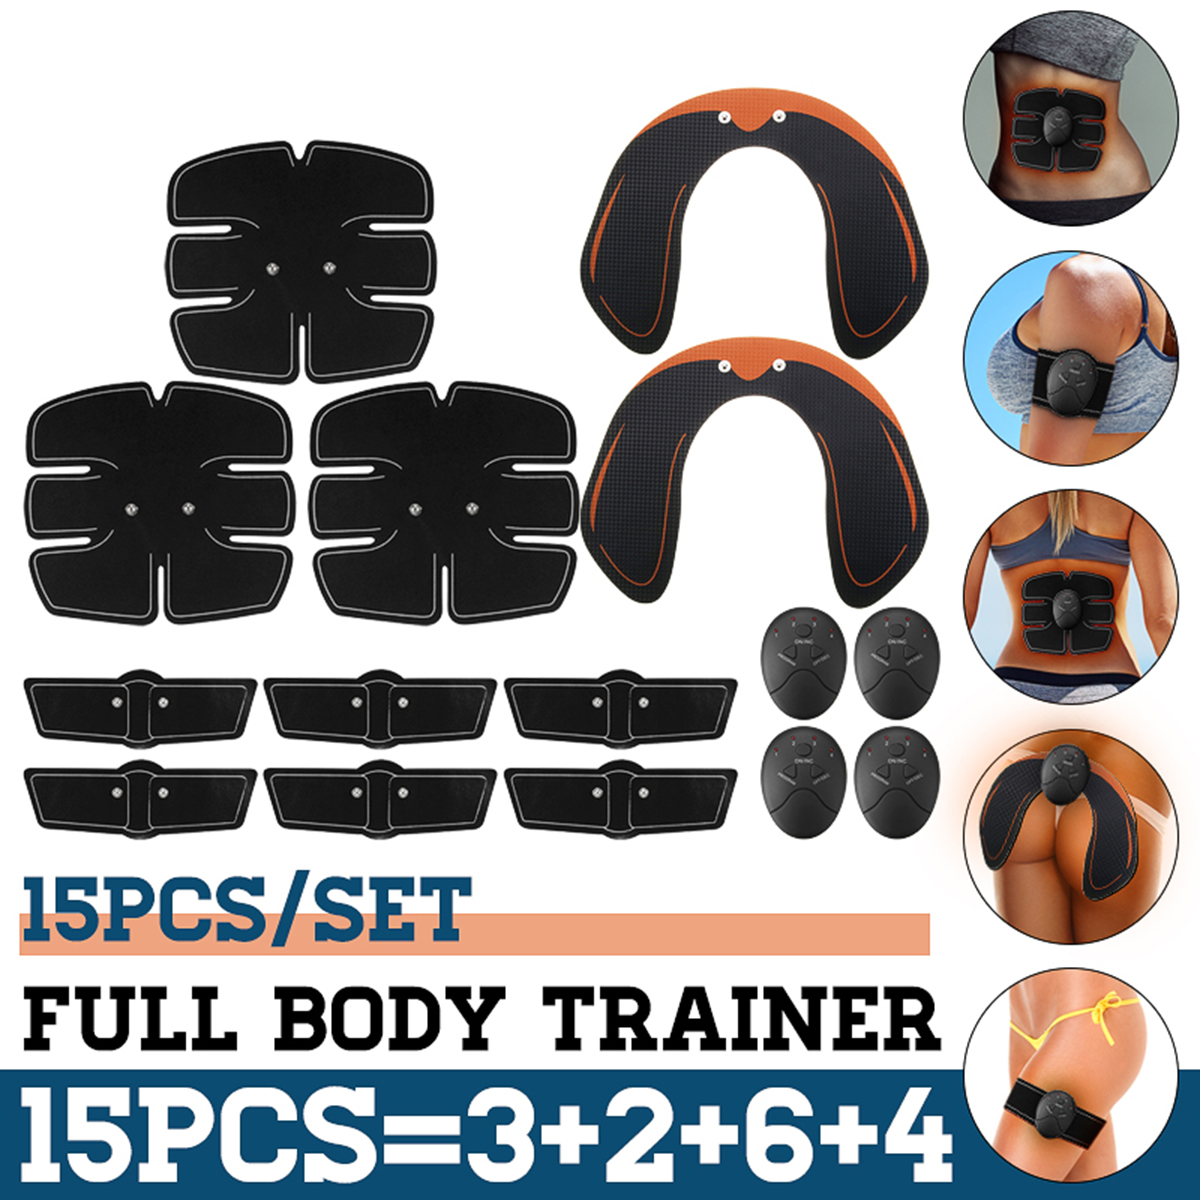 15PCS/Set EMS Muscle Abdominal Trainer Smart Wireless Muscle ABS Hip Abdominal Muscle Stimulator Massage Set Weight Loss-in Massage & Relaxation from Beauty & Health